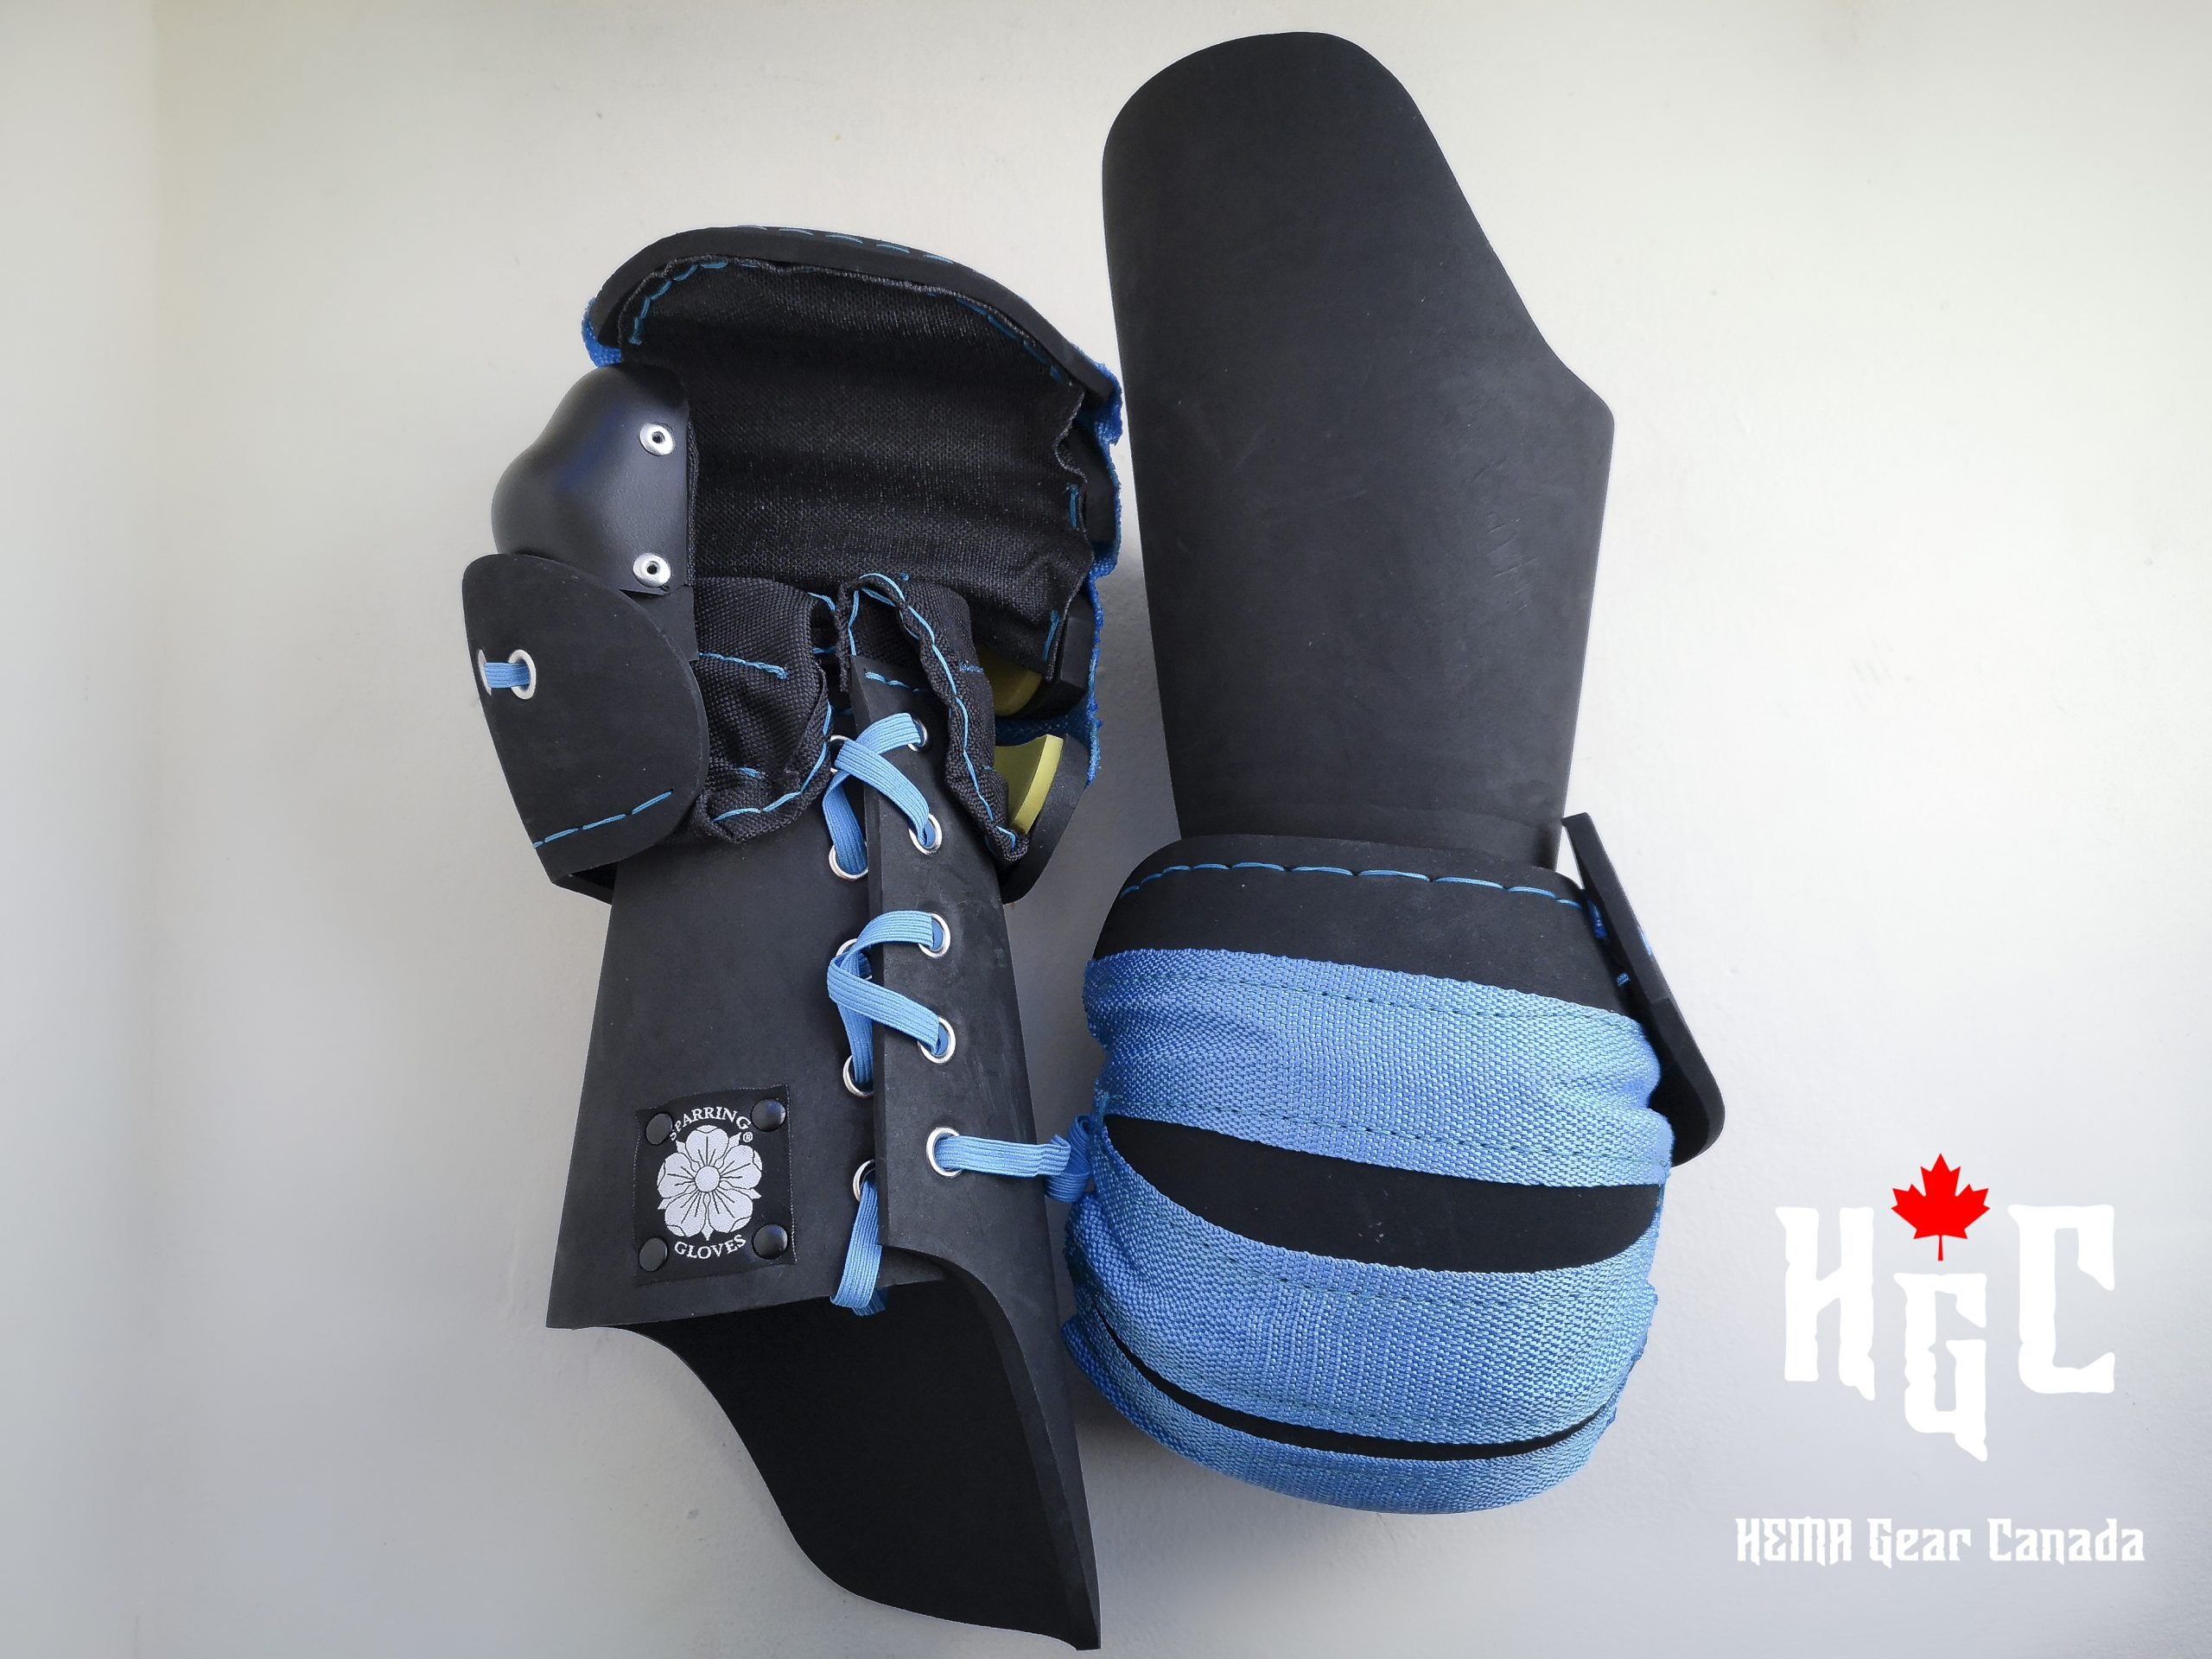 Sparring Gloves Mitten with Long Cuff (Medium, Blue) Image